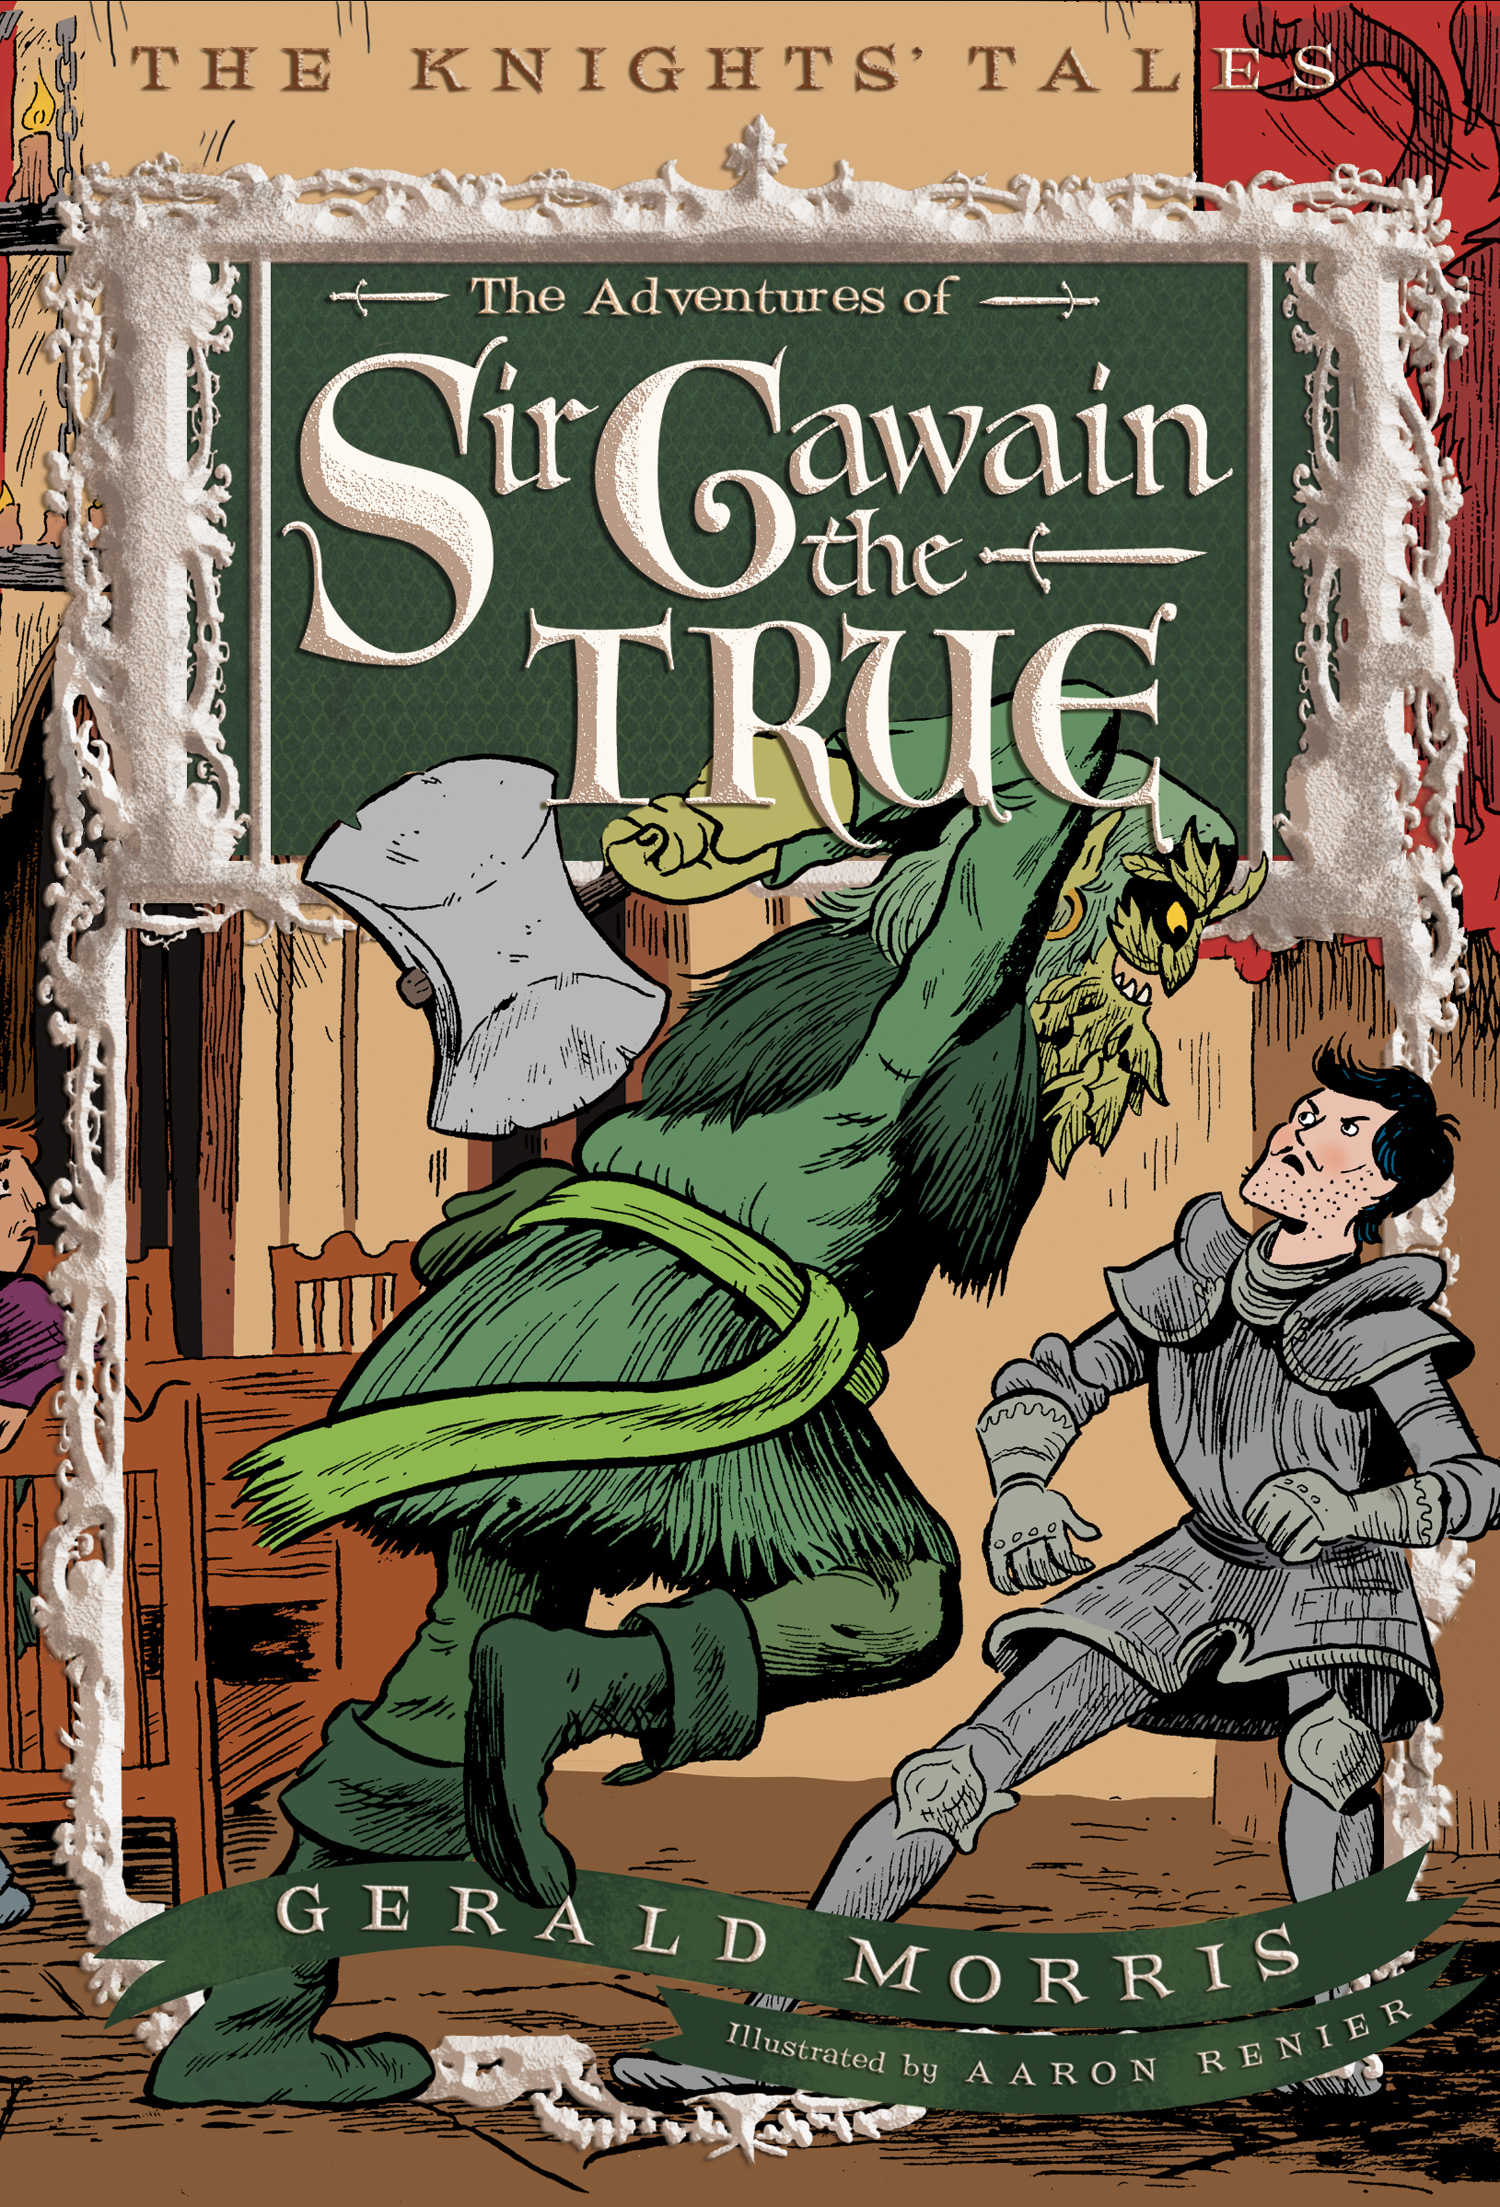 The Adventures of Sir Gawain the True-9780544022645